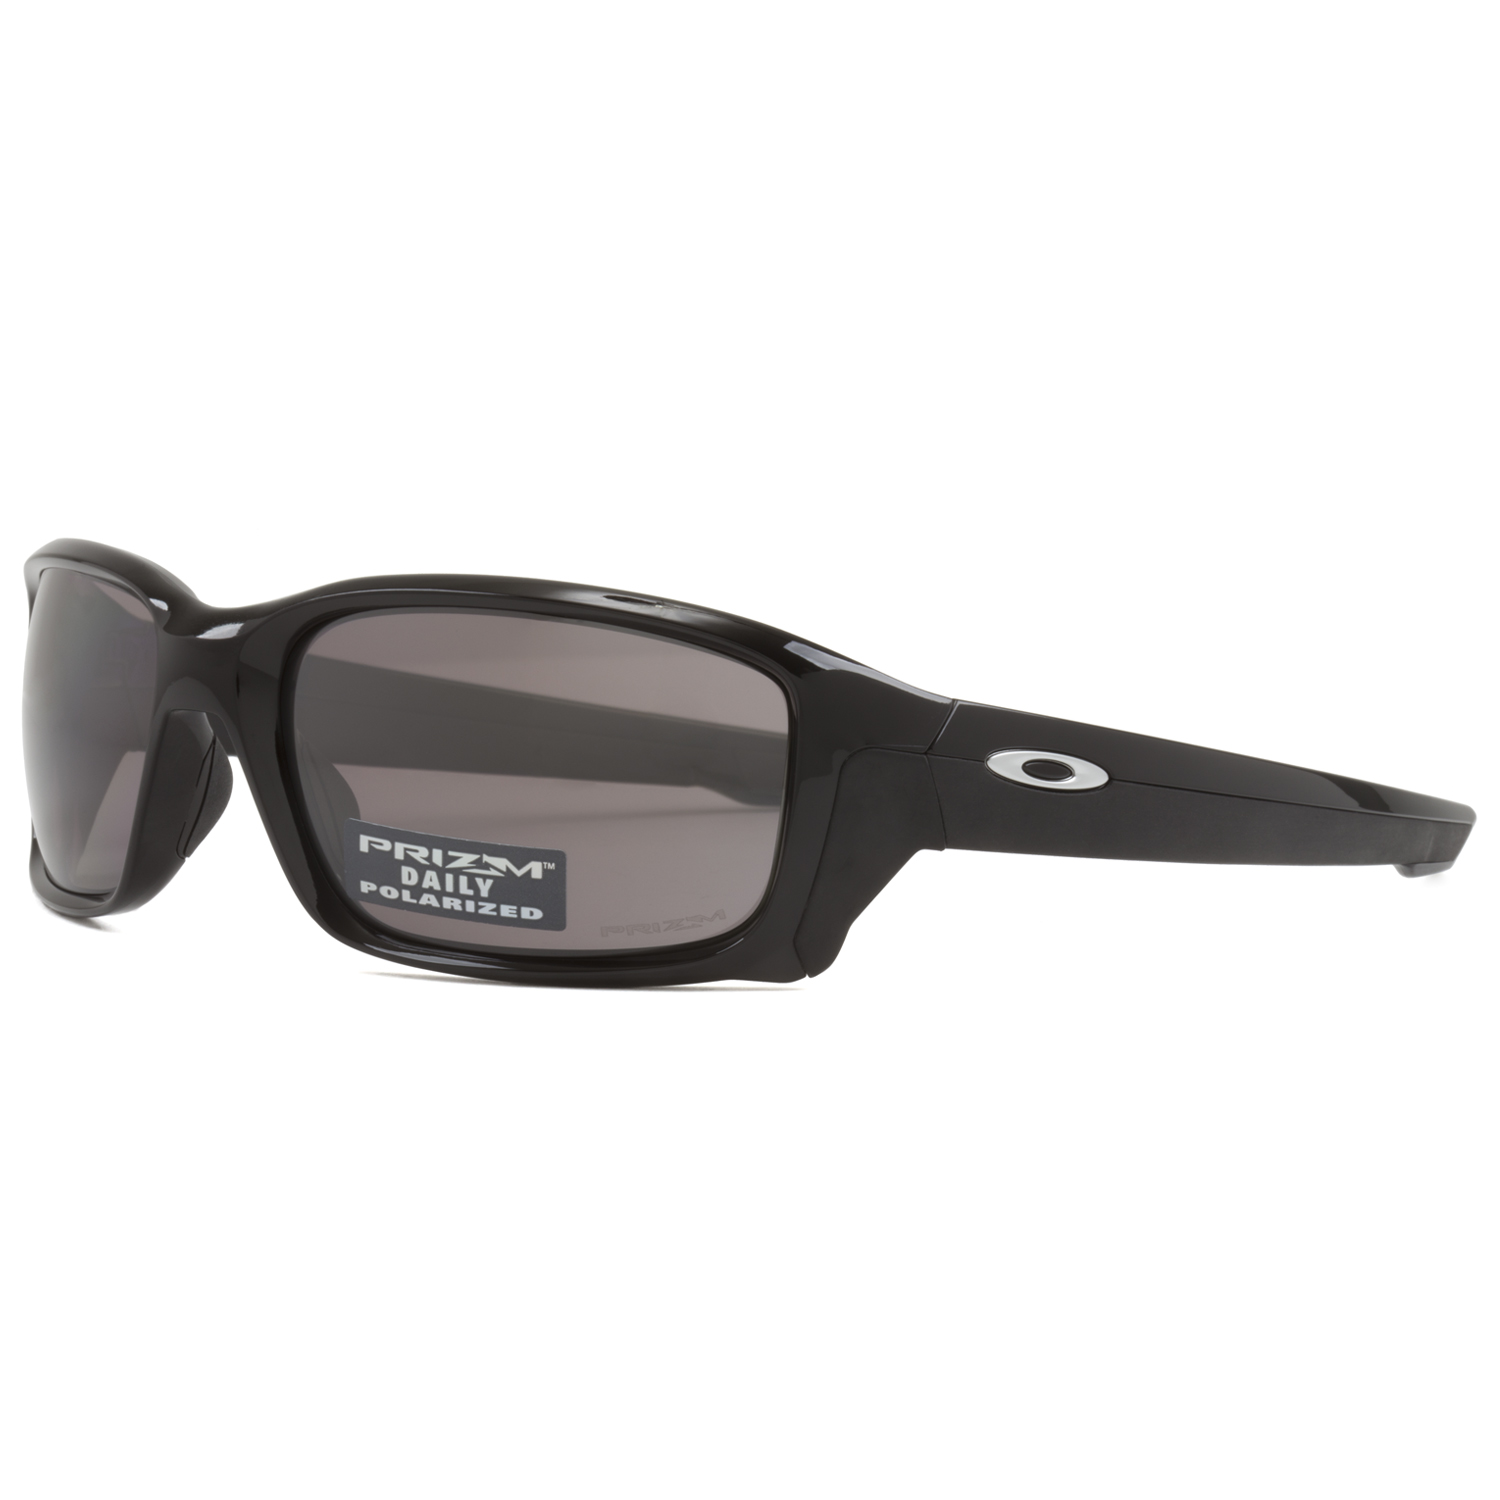 46affdbdce Details about Oakley Straightlink OO9331-07 Sunglasses Polished Black    Prizm Polar